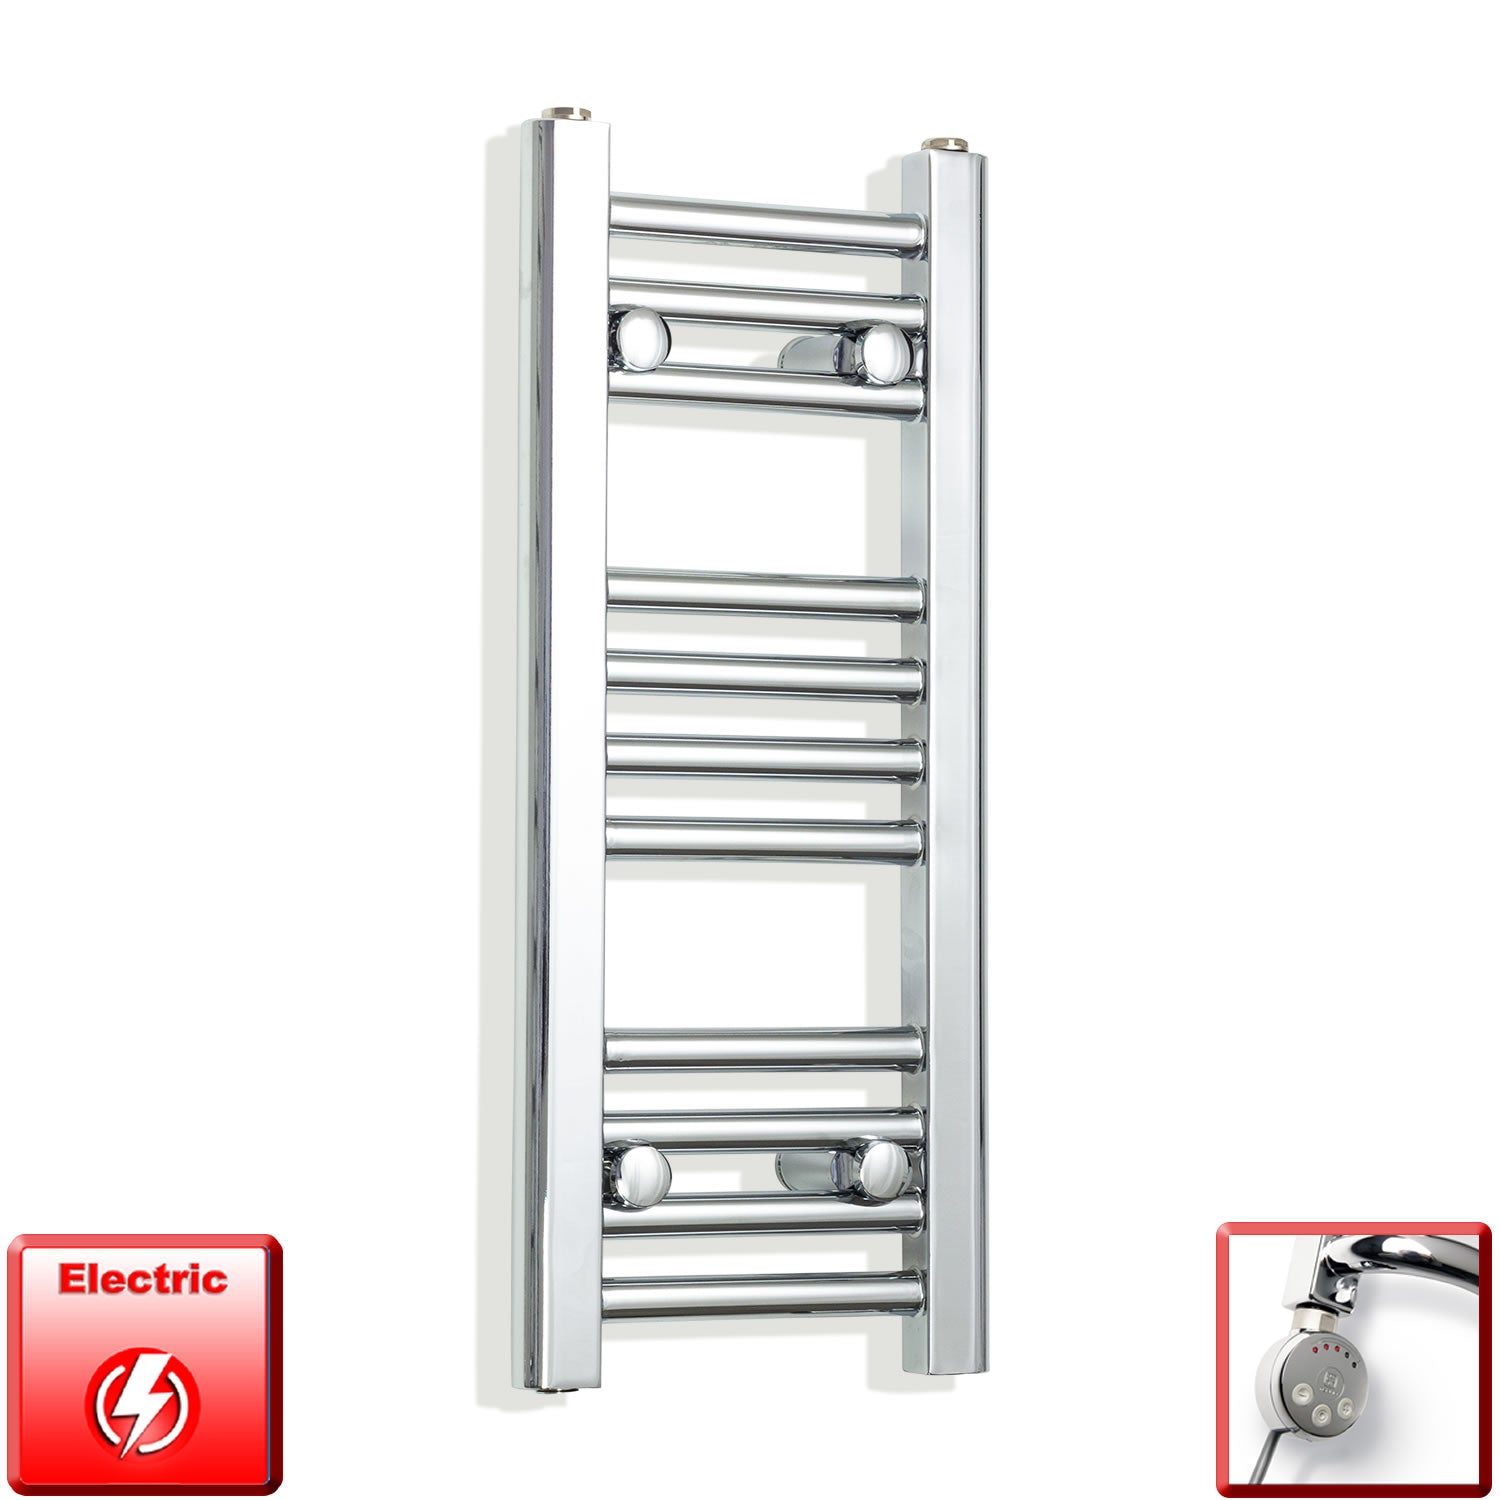 200mm Wide 600mm High Pre-Filled Chrome Electric Towel Rail Radiator With Thermostatic MEG Element